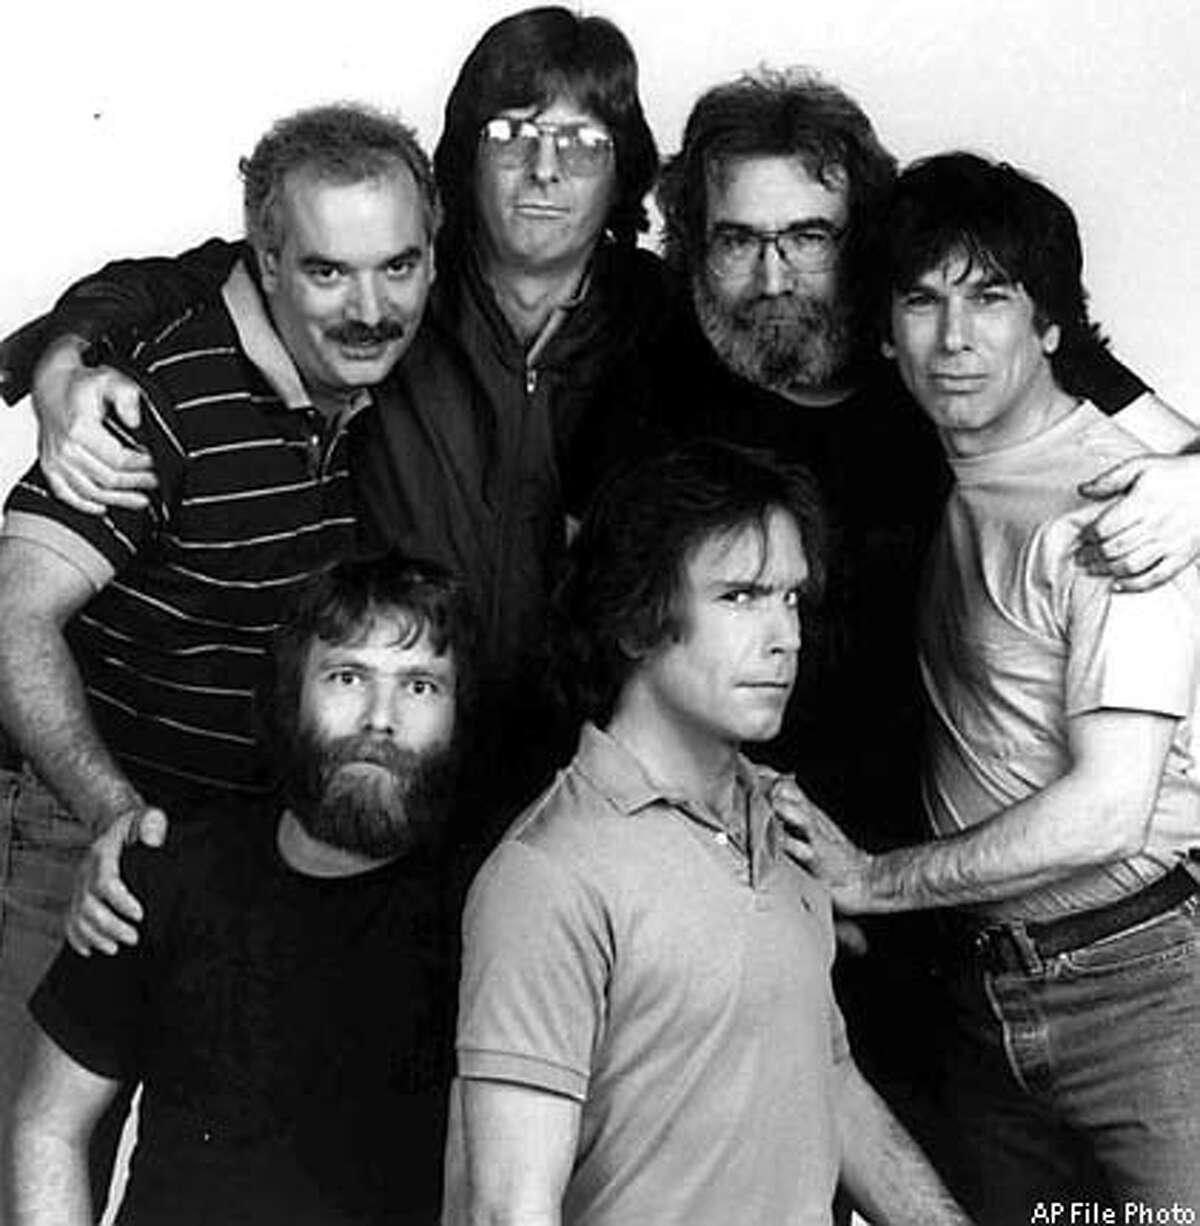 ** FILE ** Members of the Grateful Dead pose in a1985 photo in Marin County, Calif. From left, back row, are Bill Kreutzman, Phil Lesh, Jerry Garcia, and Mickey Hart. In front are Brent Mydland, left, and Bob Weir. After lead singer Jerry Garcia's death in 1995, the Grateful Dead retired from touring. But every now and then The Other Ones, the band's surviving members, put on a show. Bassist Phil Lesh, guitarist Bob Weir and drummers Bill Kreutzman and Mickey Hart quickly sold 70,000 tickets to two shows Aug. 3-4, 2002 in East Troy, Wis. (AP Photo)